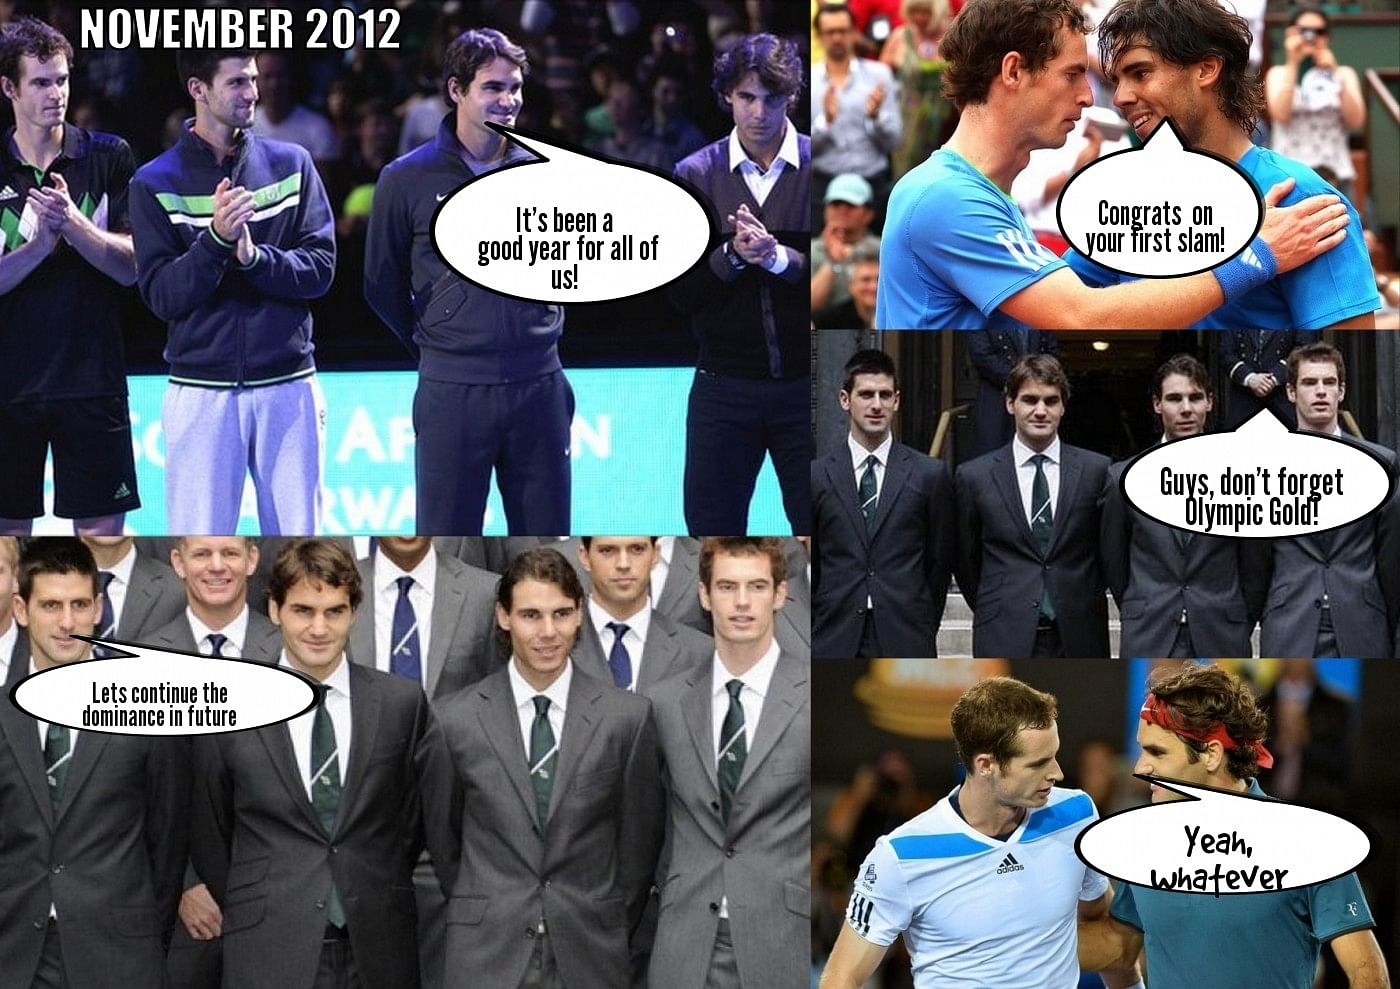 Humour: The REAL conversations between tennis players